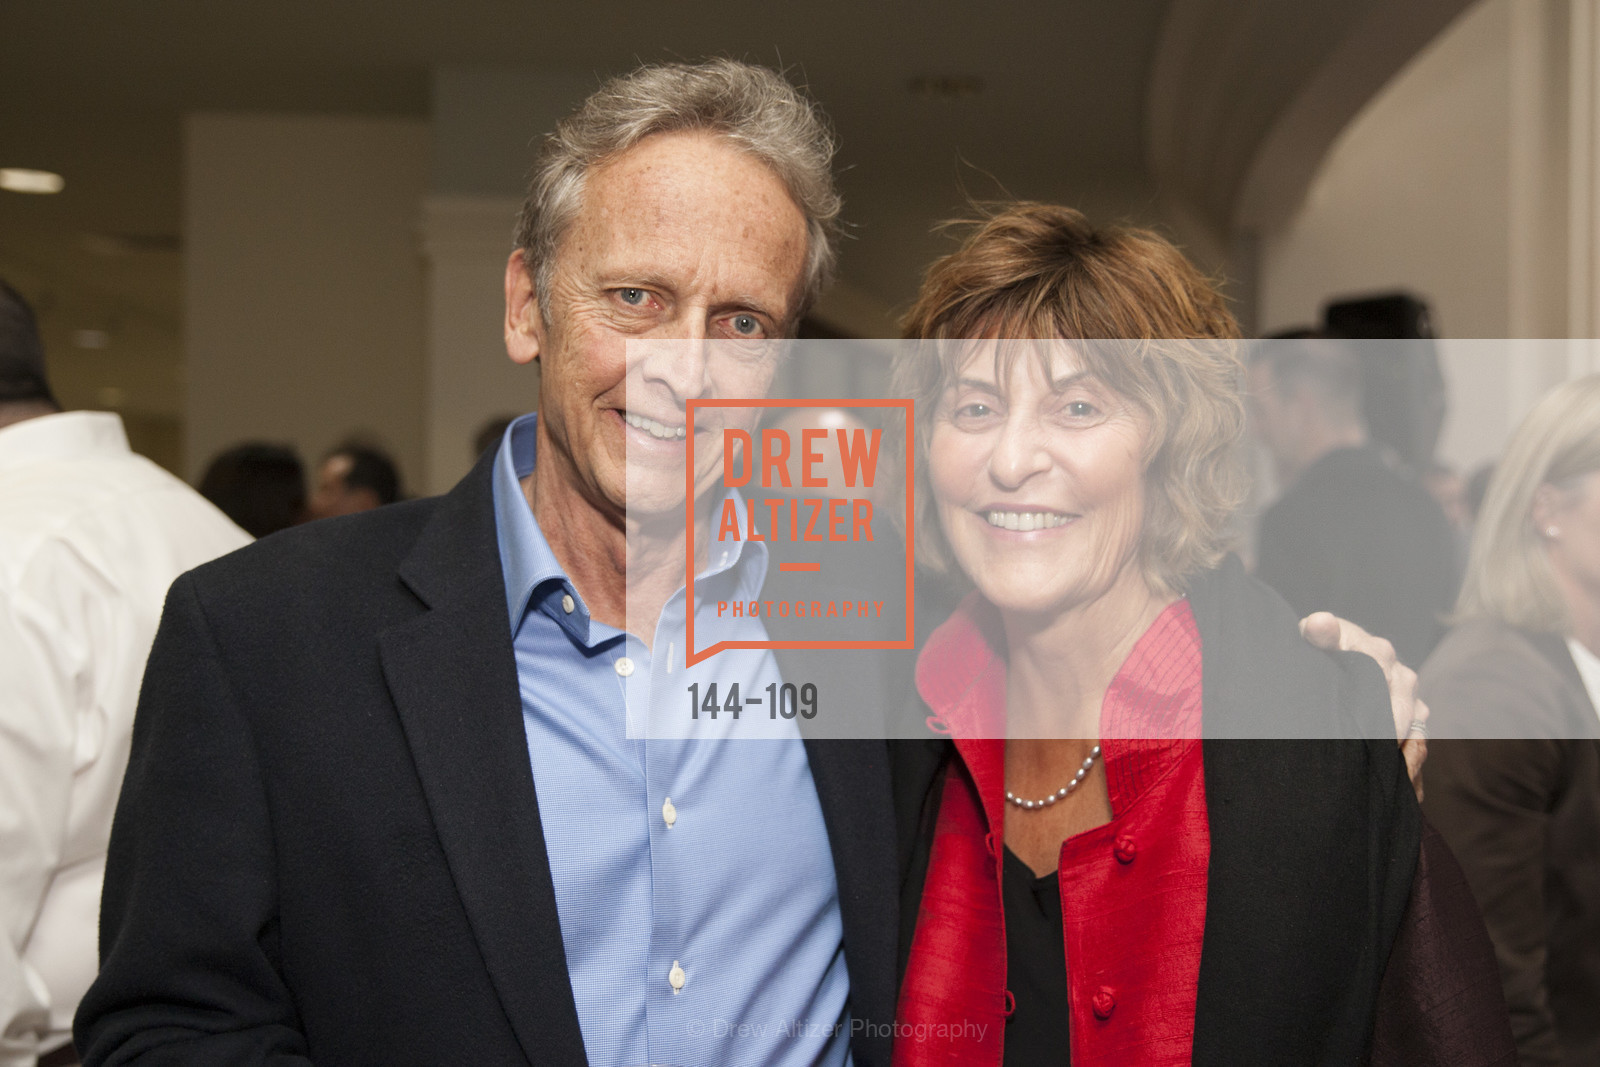 Brian Welch, Leni Miller, PANGAEA GLOBAL HEALTH Leadership Dinner at Rotunda in Oakland, The Rotunda. Oakland, May 11th, 2015,Drew Altizer, Drew Altizer Photography, full-service agency, private events, San Francisco photographer, photographer california